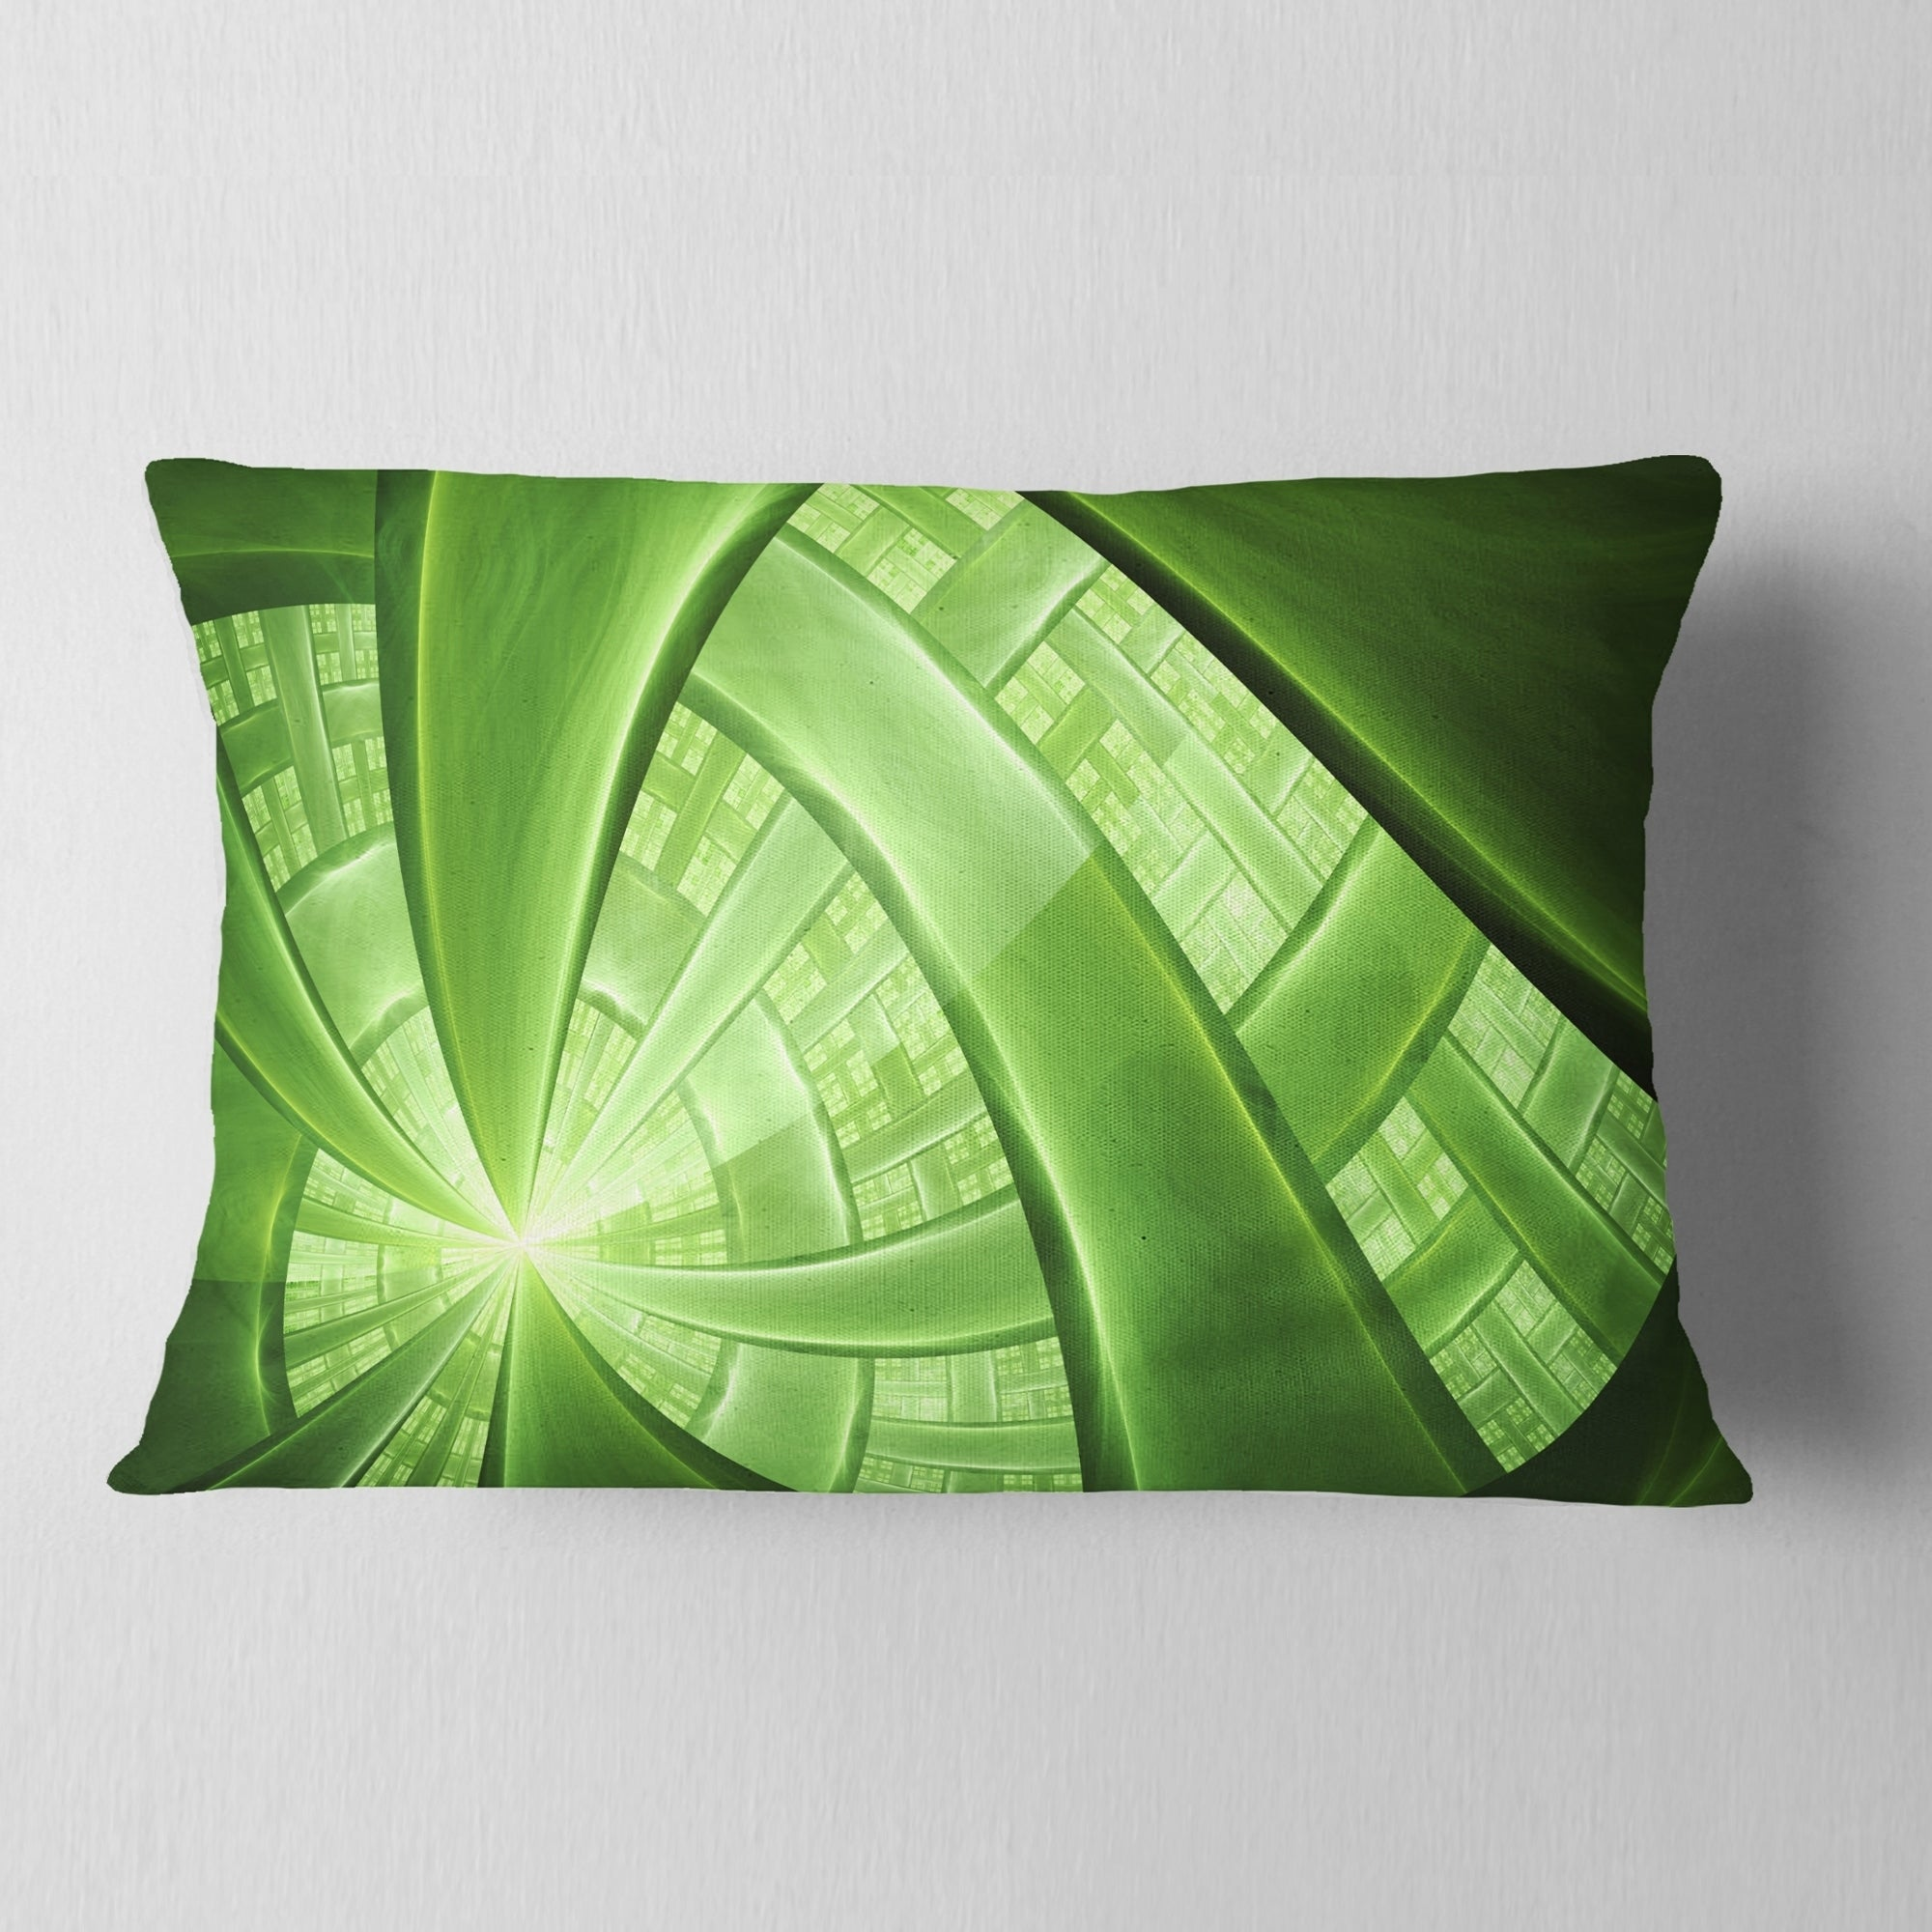 Shop For Designart Green Fractal Exotic Plant Stems Abstract Throw Pillow Get Free Shipping On Everything At Overstock Your Online Home Decor Outlet Store Get 5 In Rewards With Club O 20953002